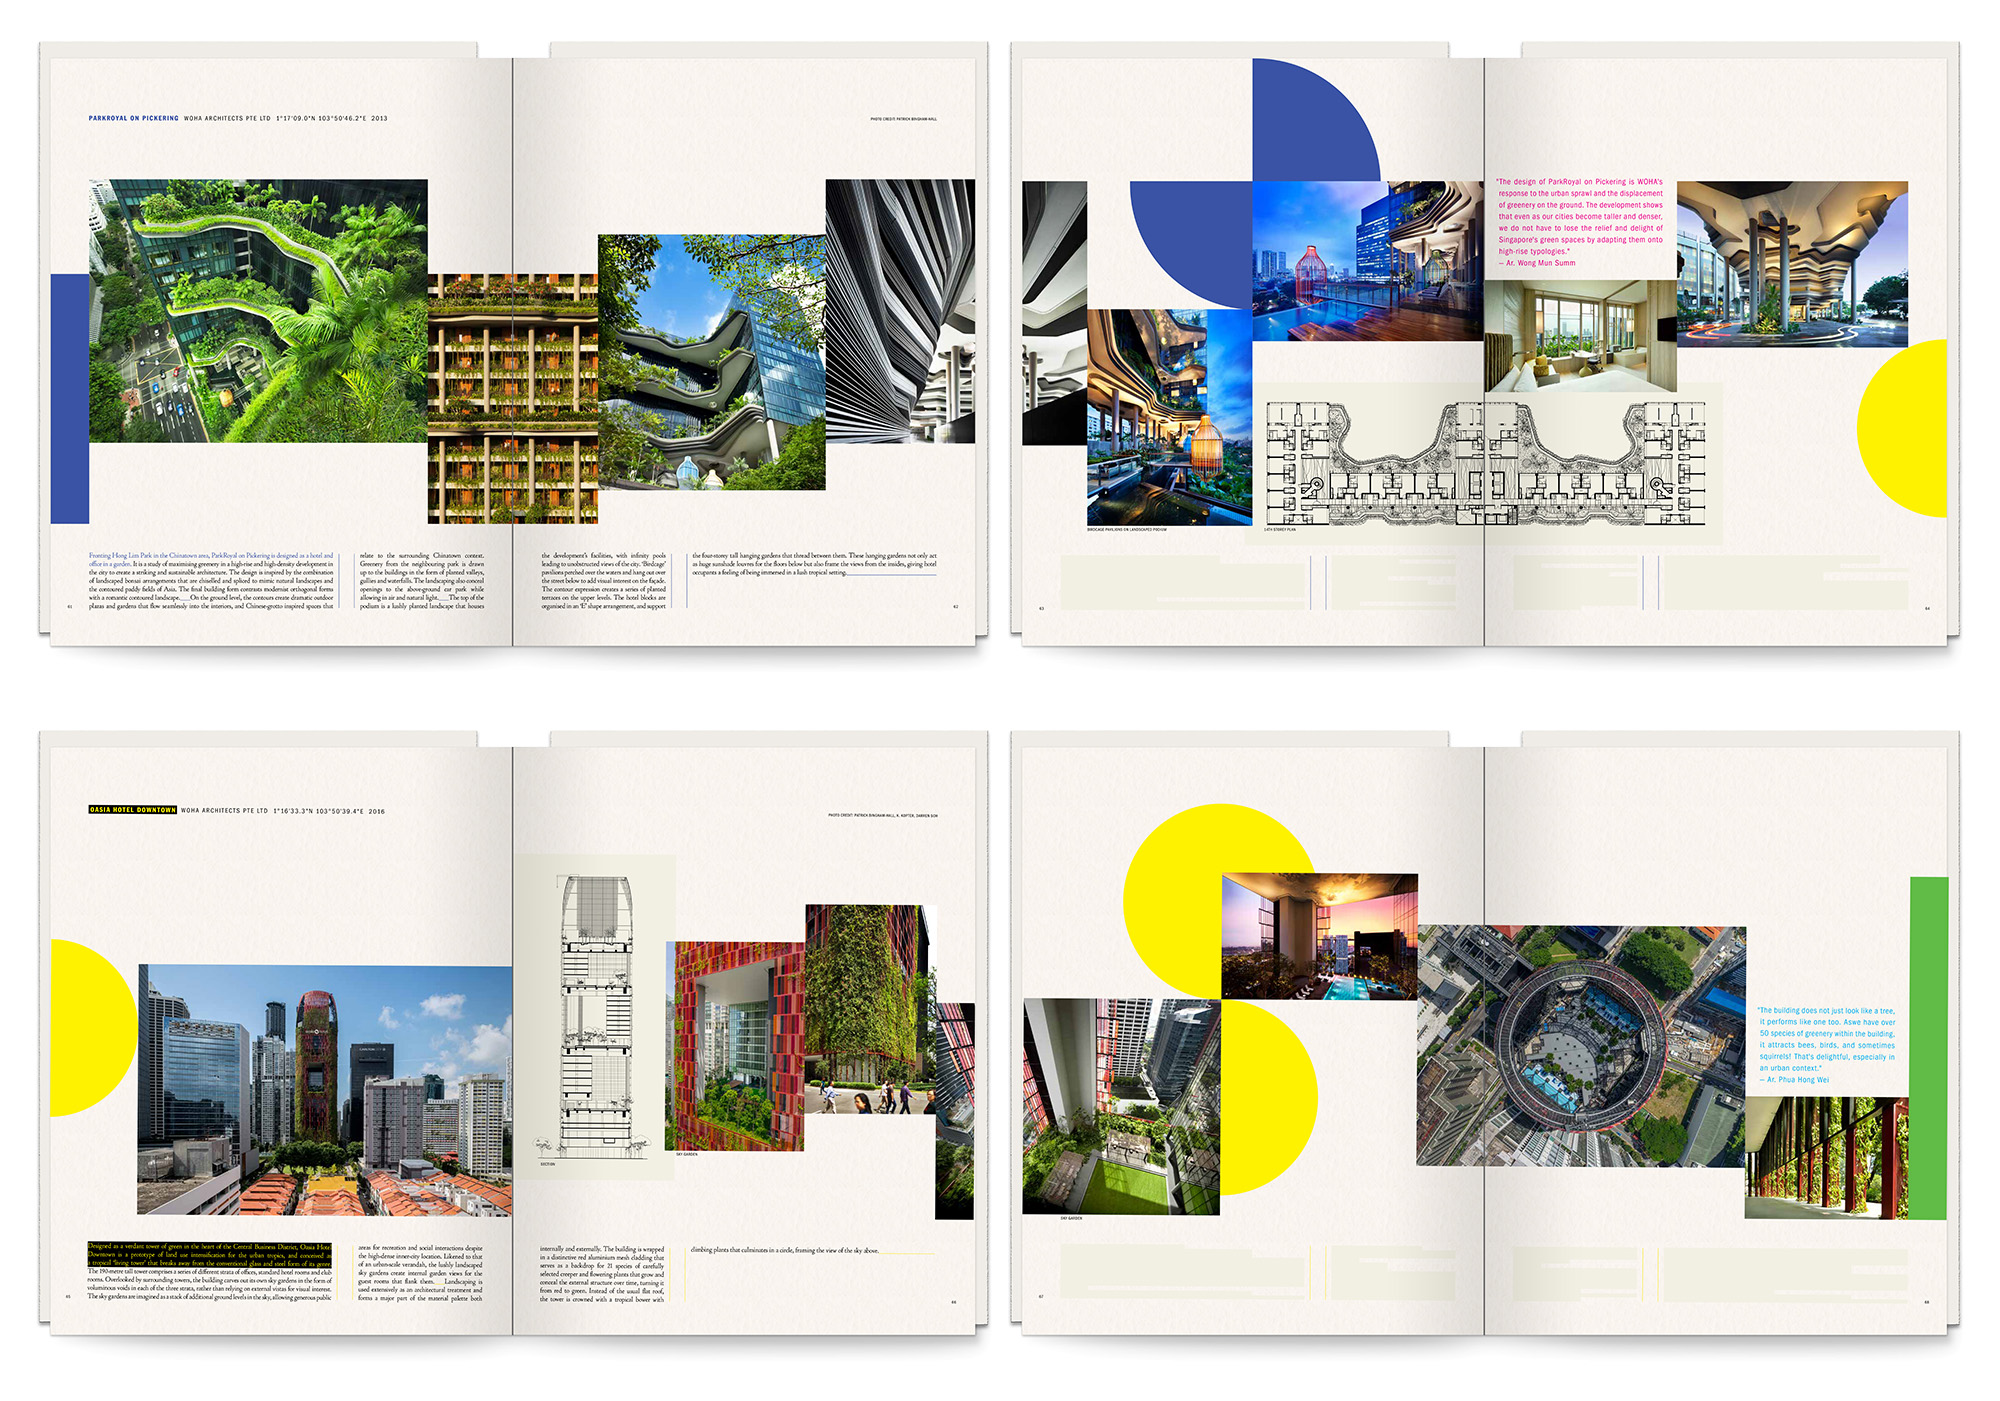 Inside spreads of the Contemporaneous Architecture book